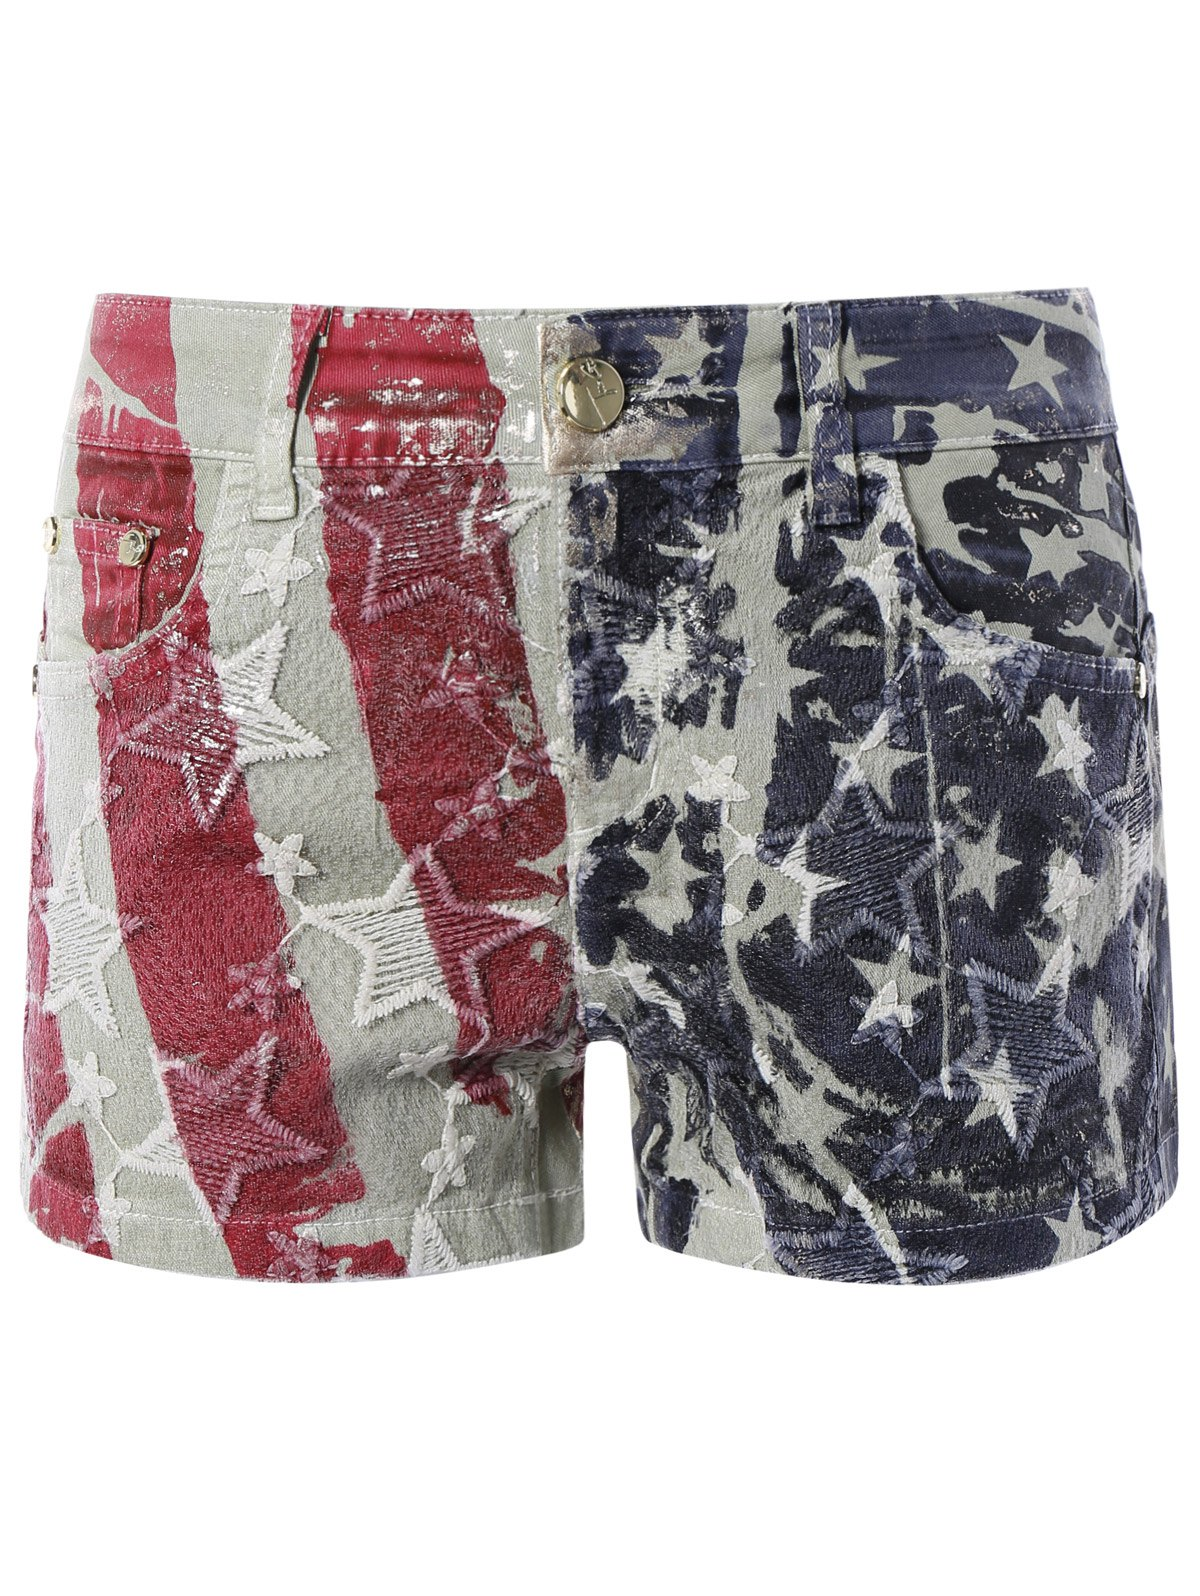 Chic Star Print Shorts - COLORMIX 30